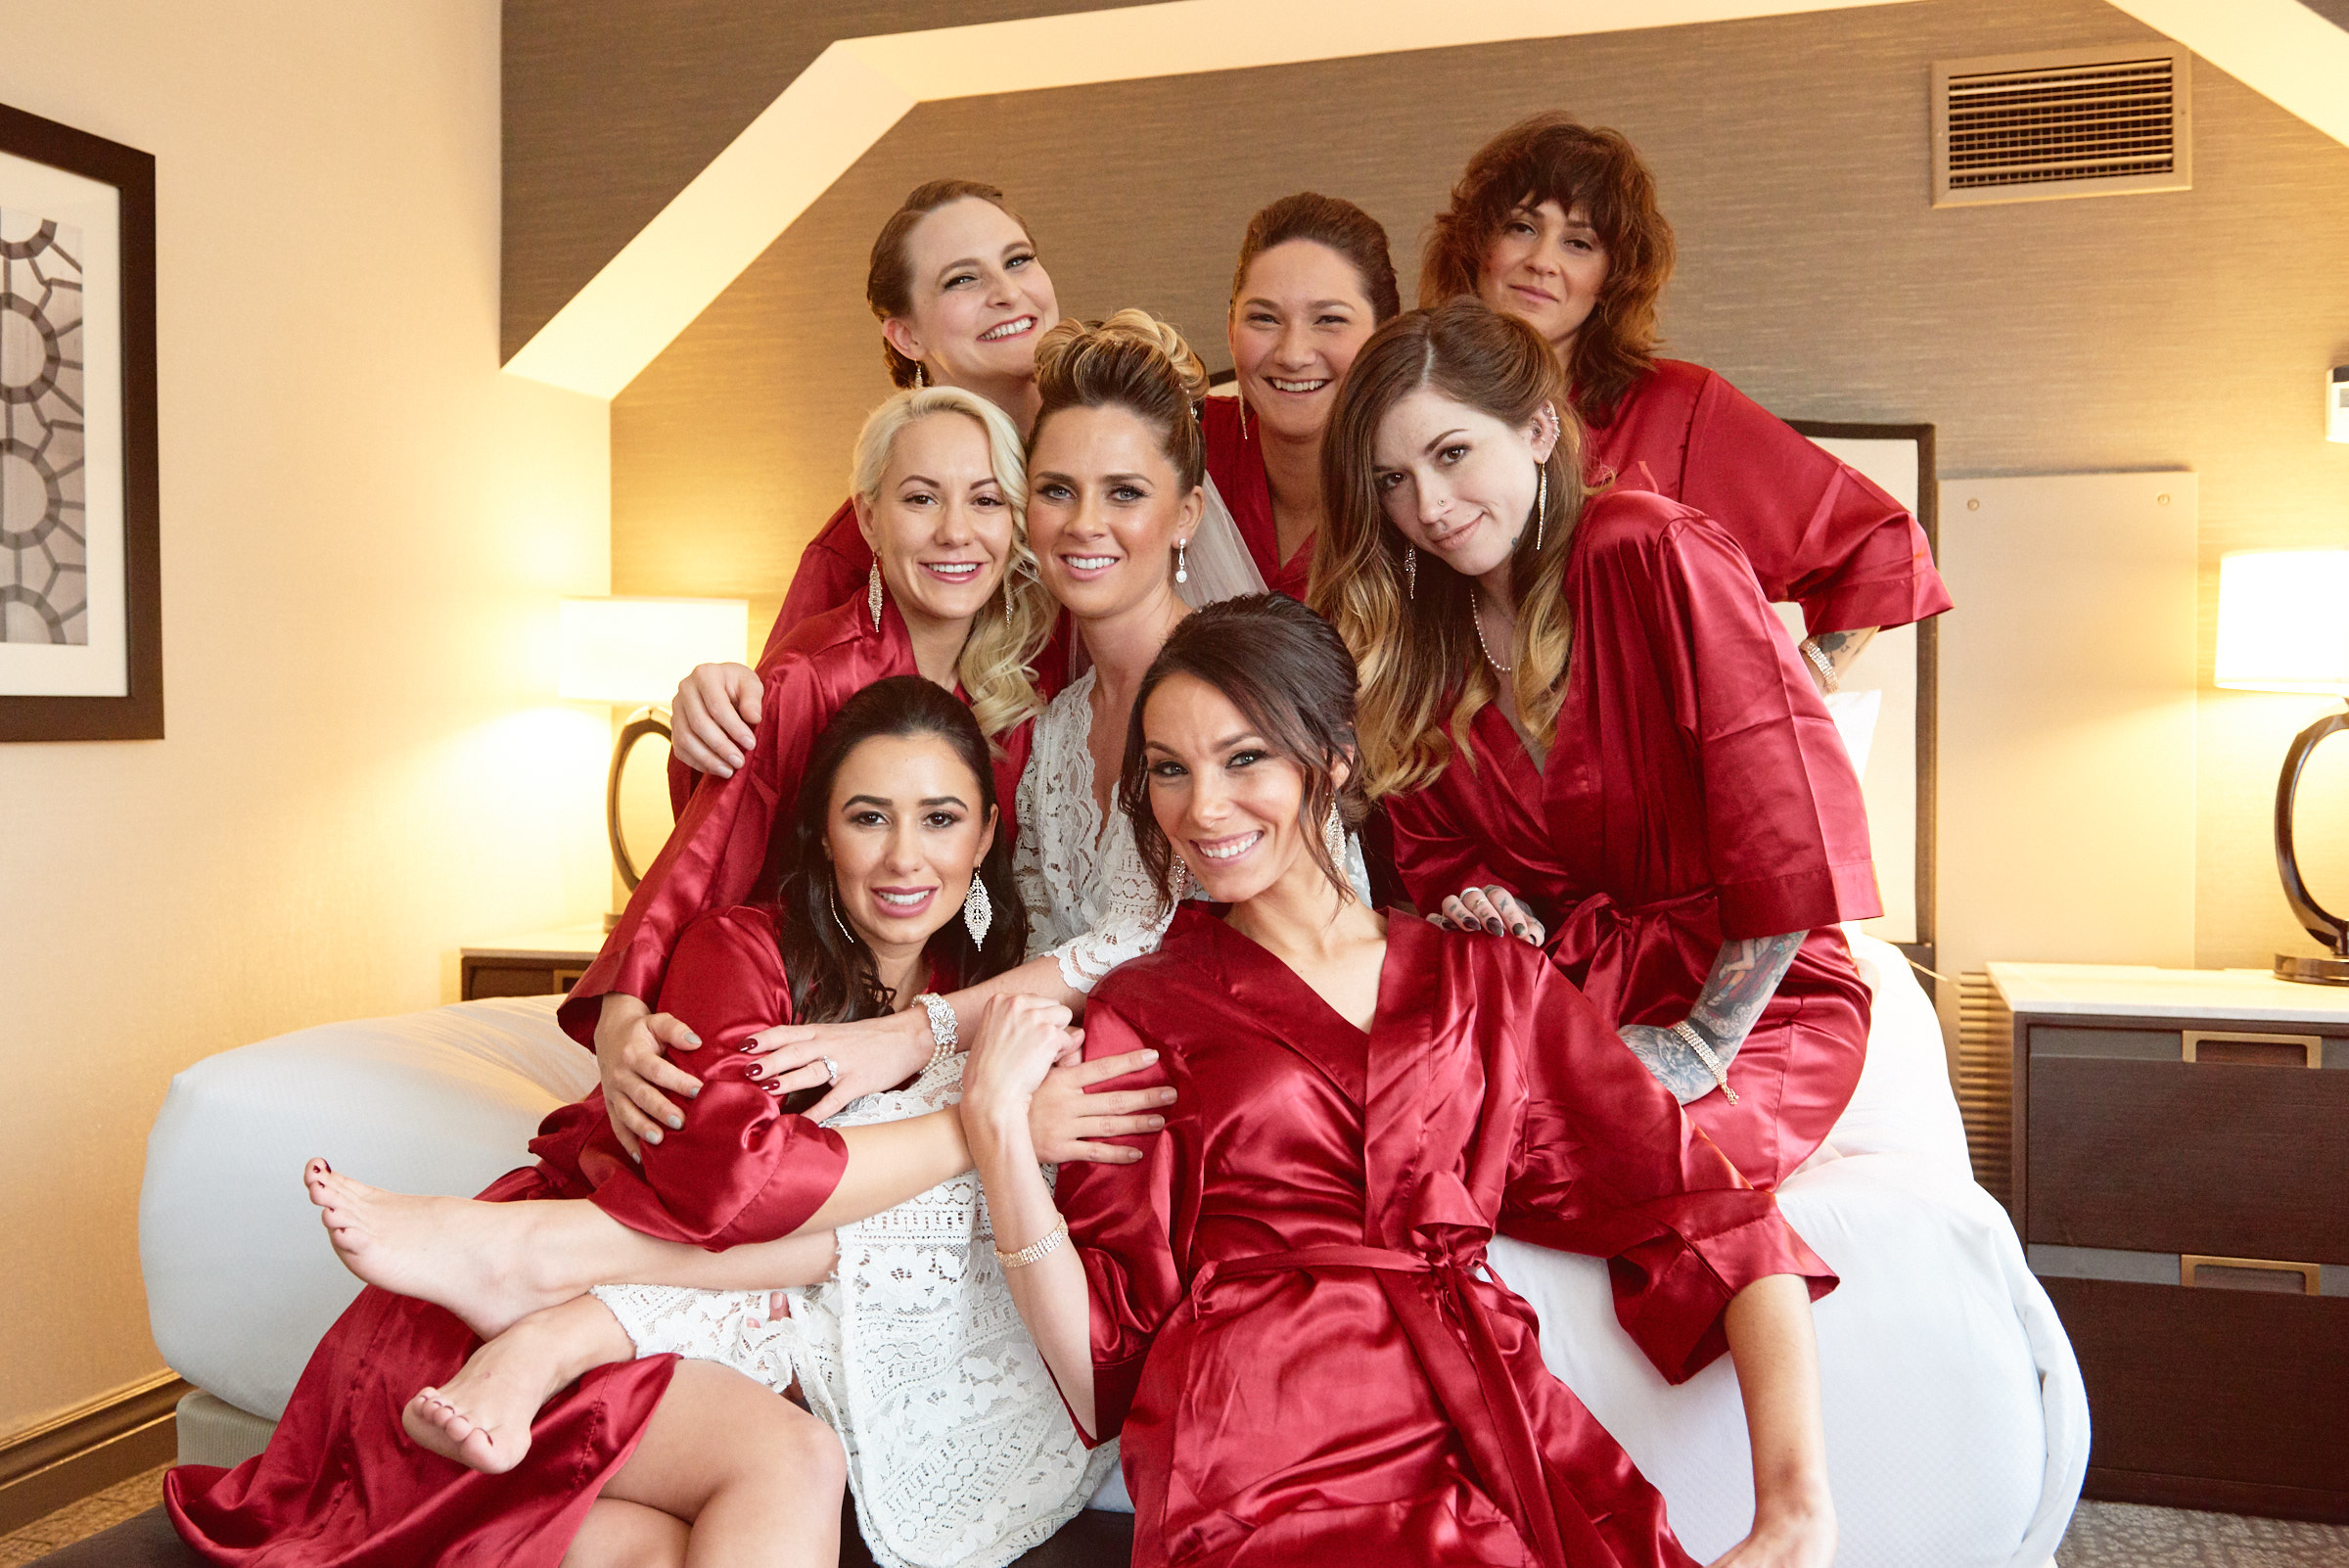 Bridesmaids posing in red robes